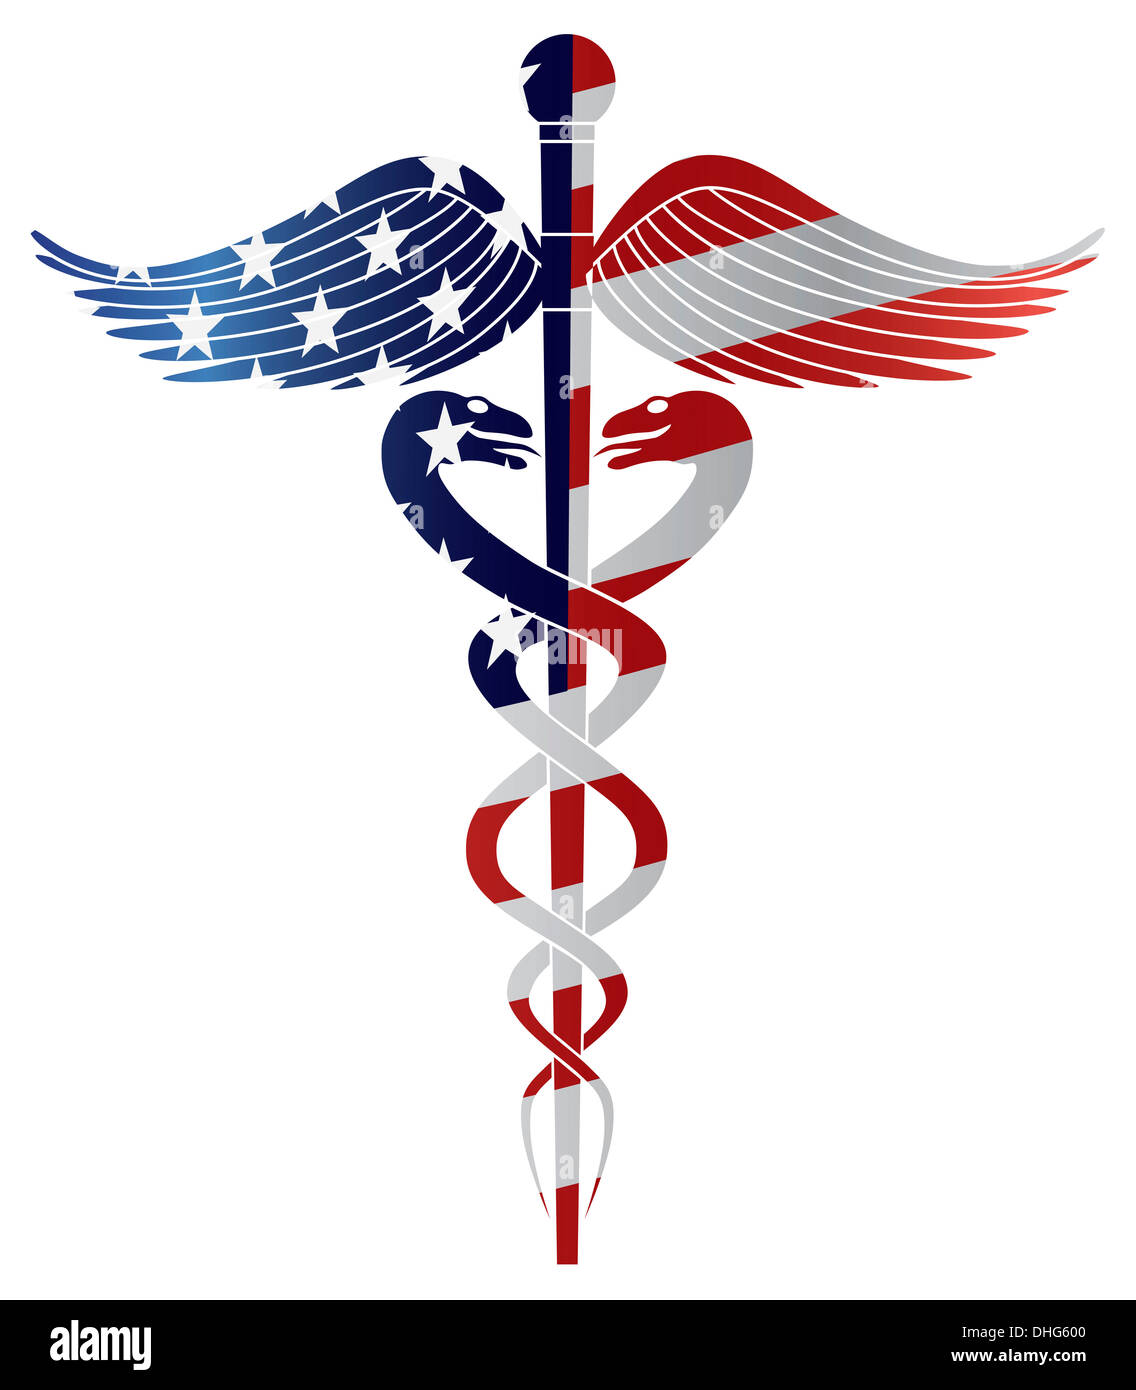 Caduceus Staff Of Hermes Stock Photos Amp Caduceus Staff Of